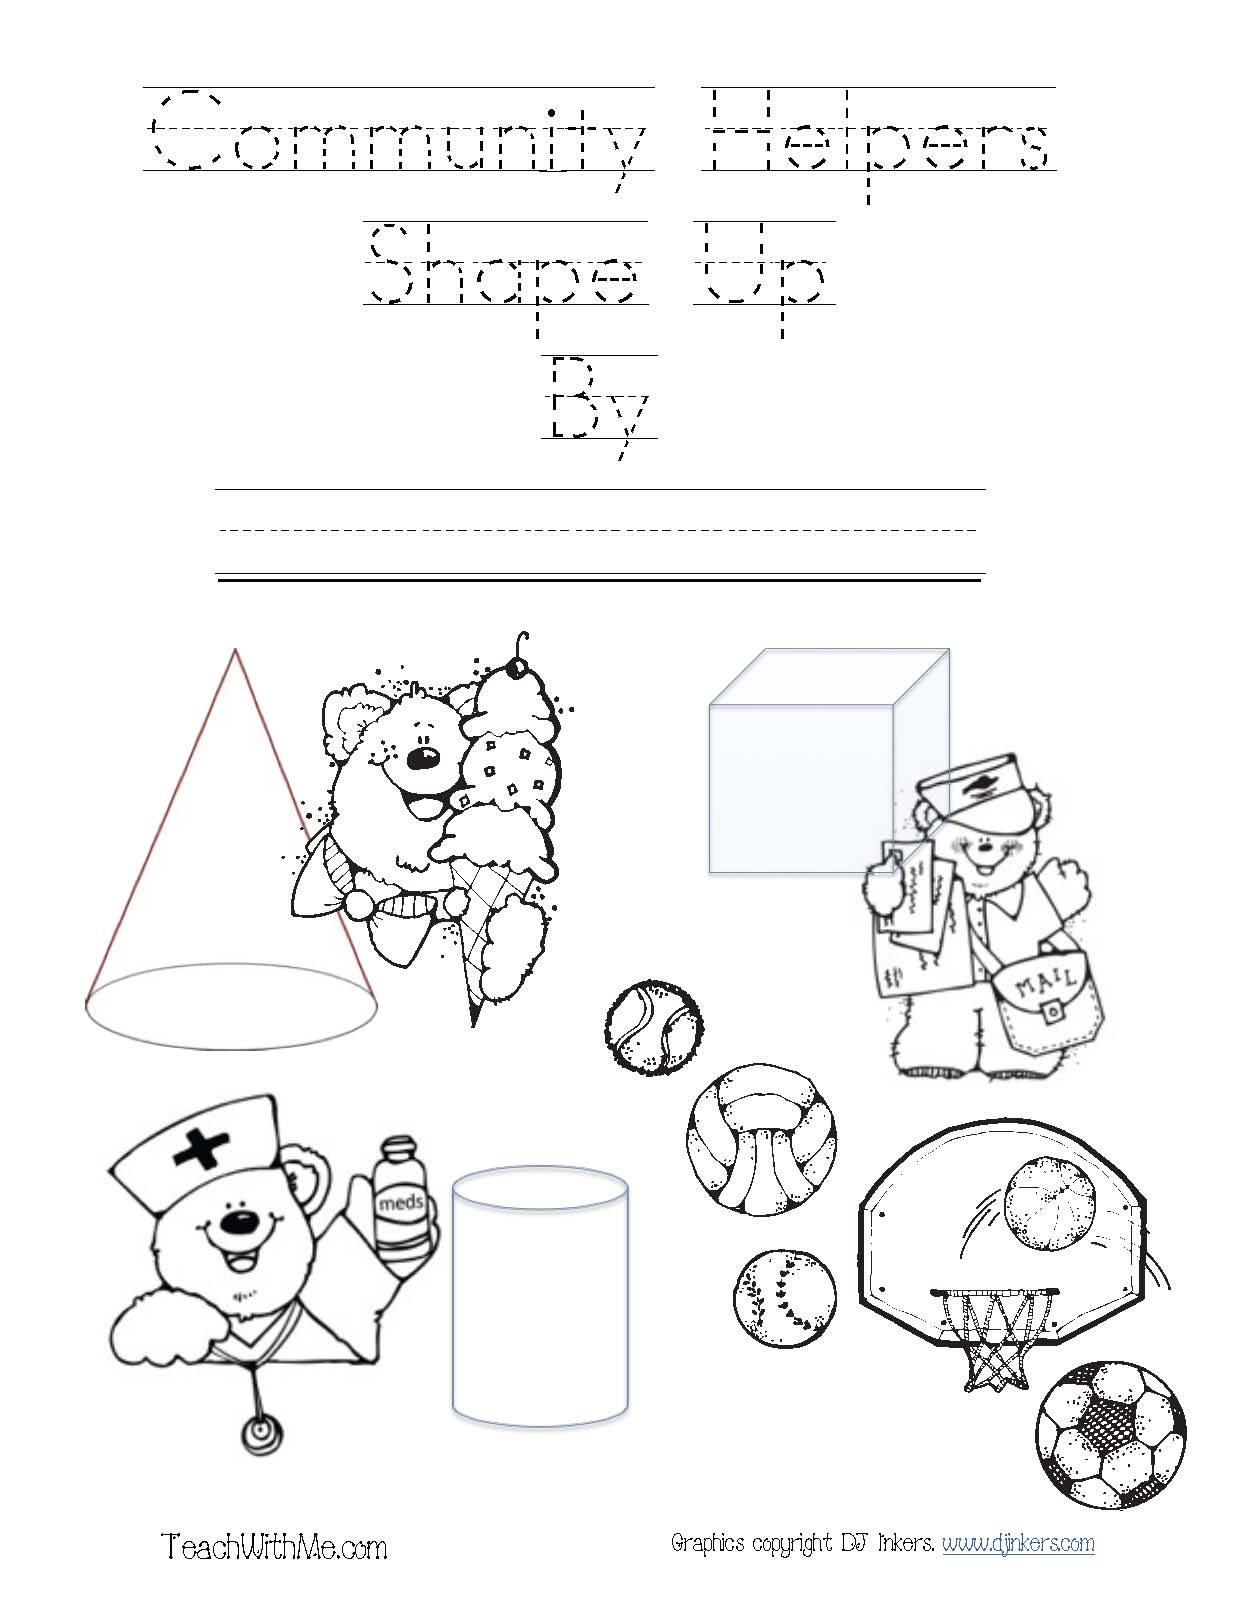 2D shapes, hexagon activities, shape activities, 2D shape activities, 2D shape lessons, shape booklet, easy reader booklet shapes, common core shapes, pentagon activities, octagon activities, Daily 5